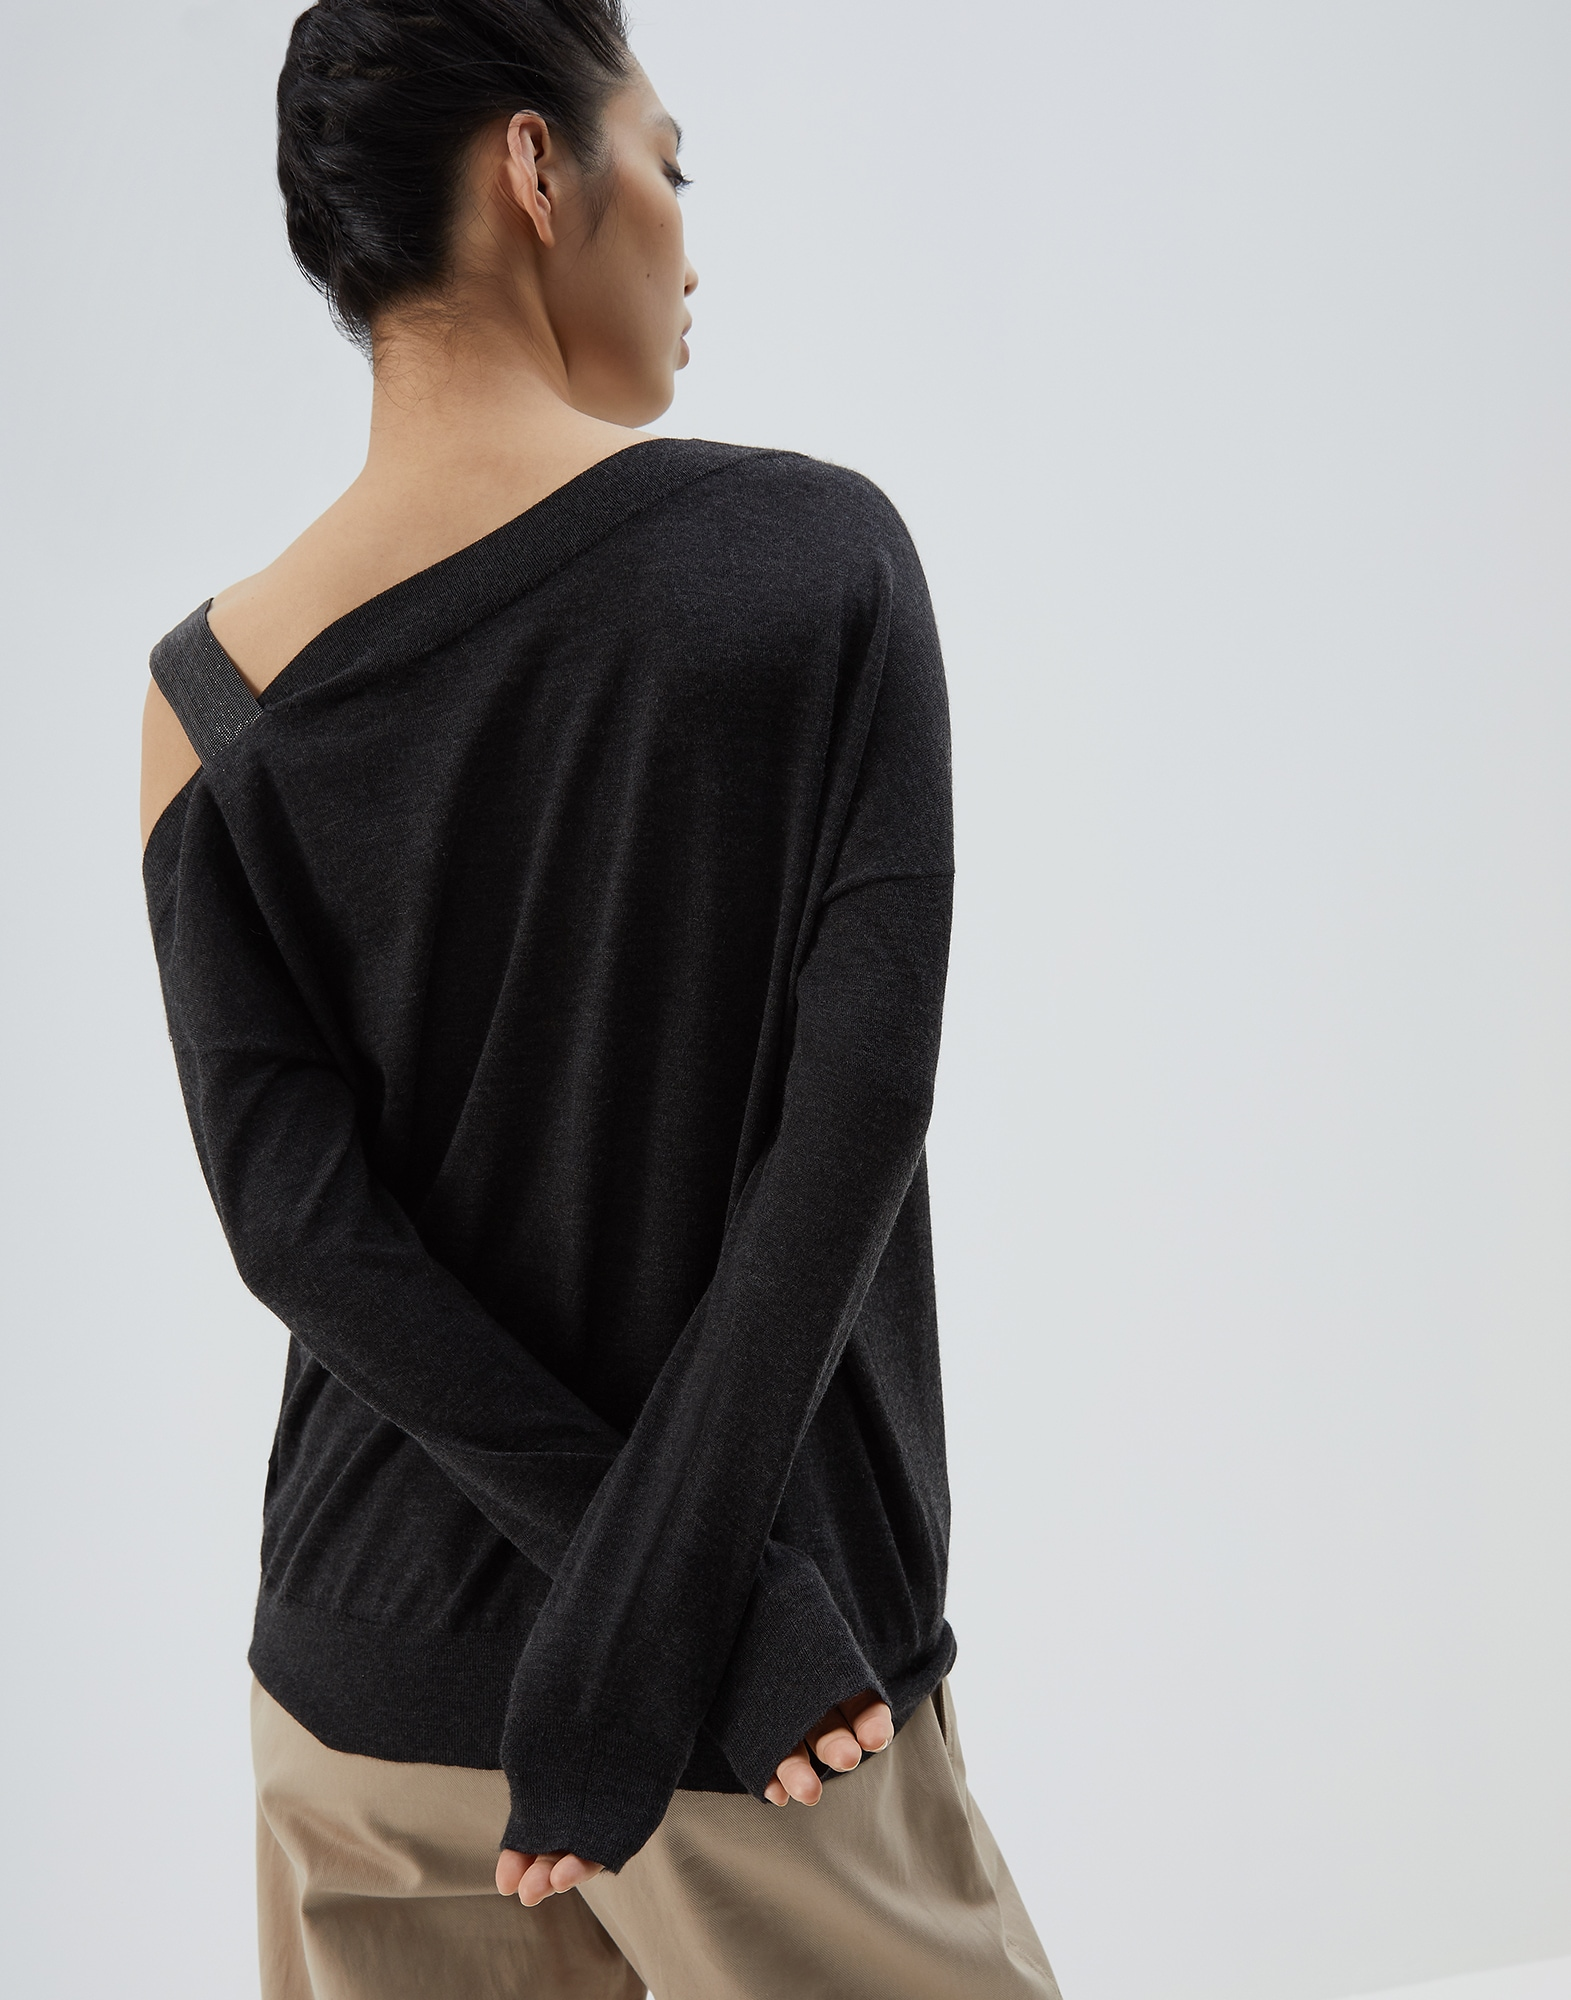 Scoop Neck - Back view